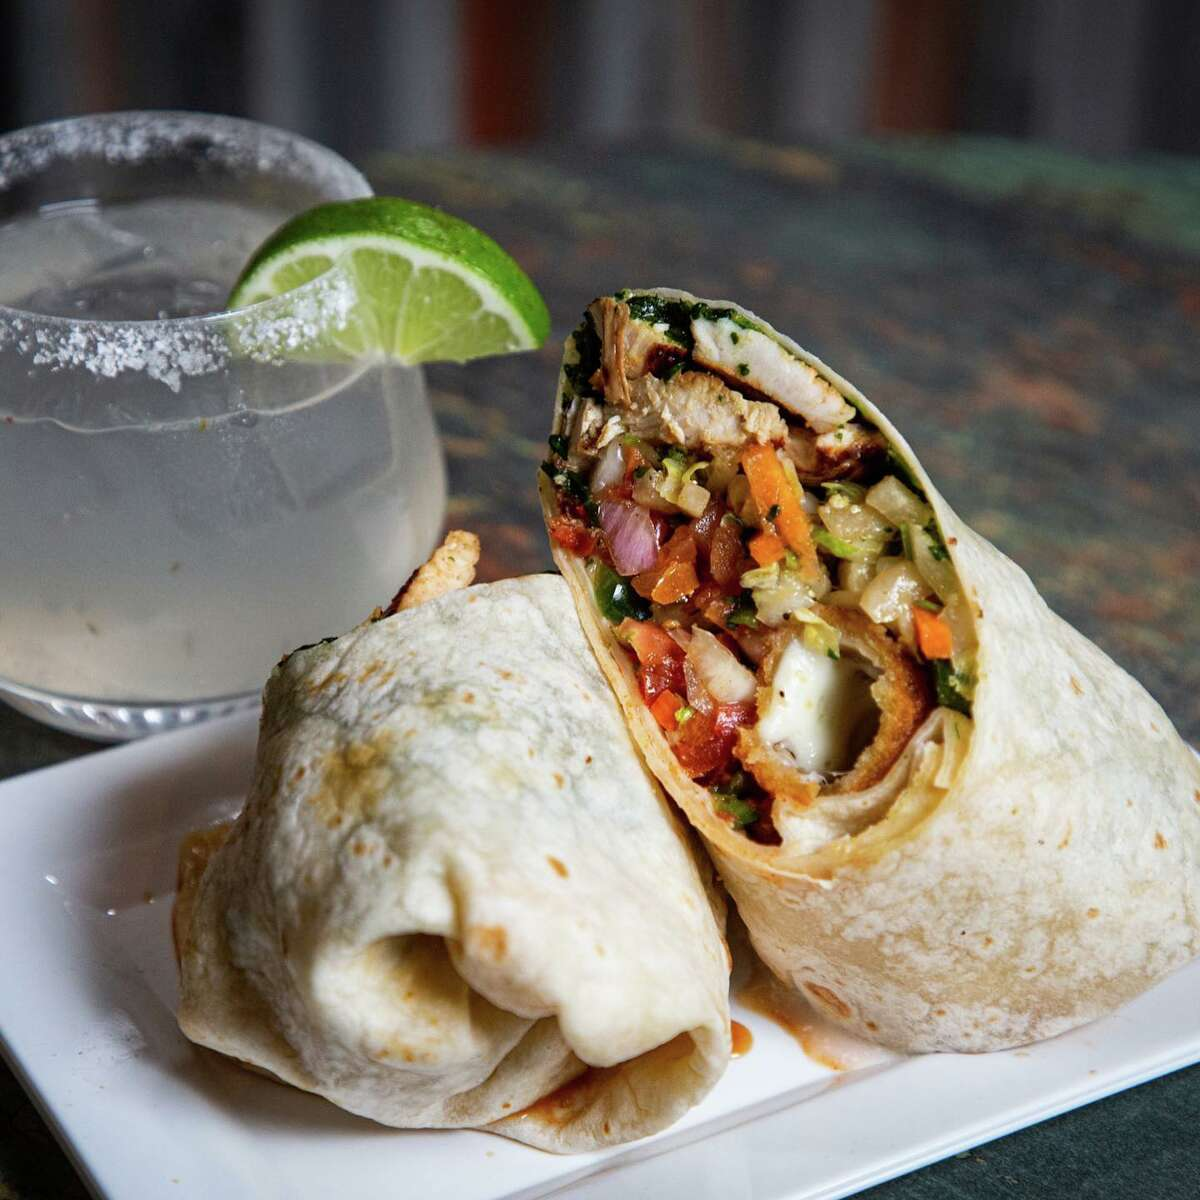 Lunch and dinner at TJ's Burritos is Mexican influenced, with burritos, tacos, salads, bowls and a variety of sandwiches and burgers.